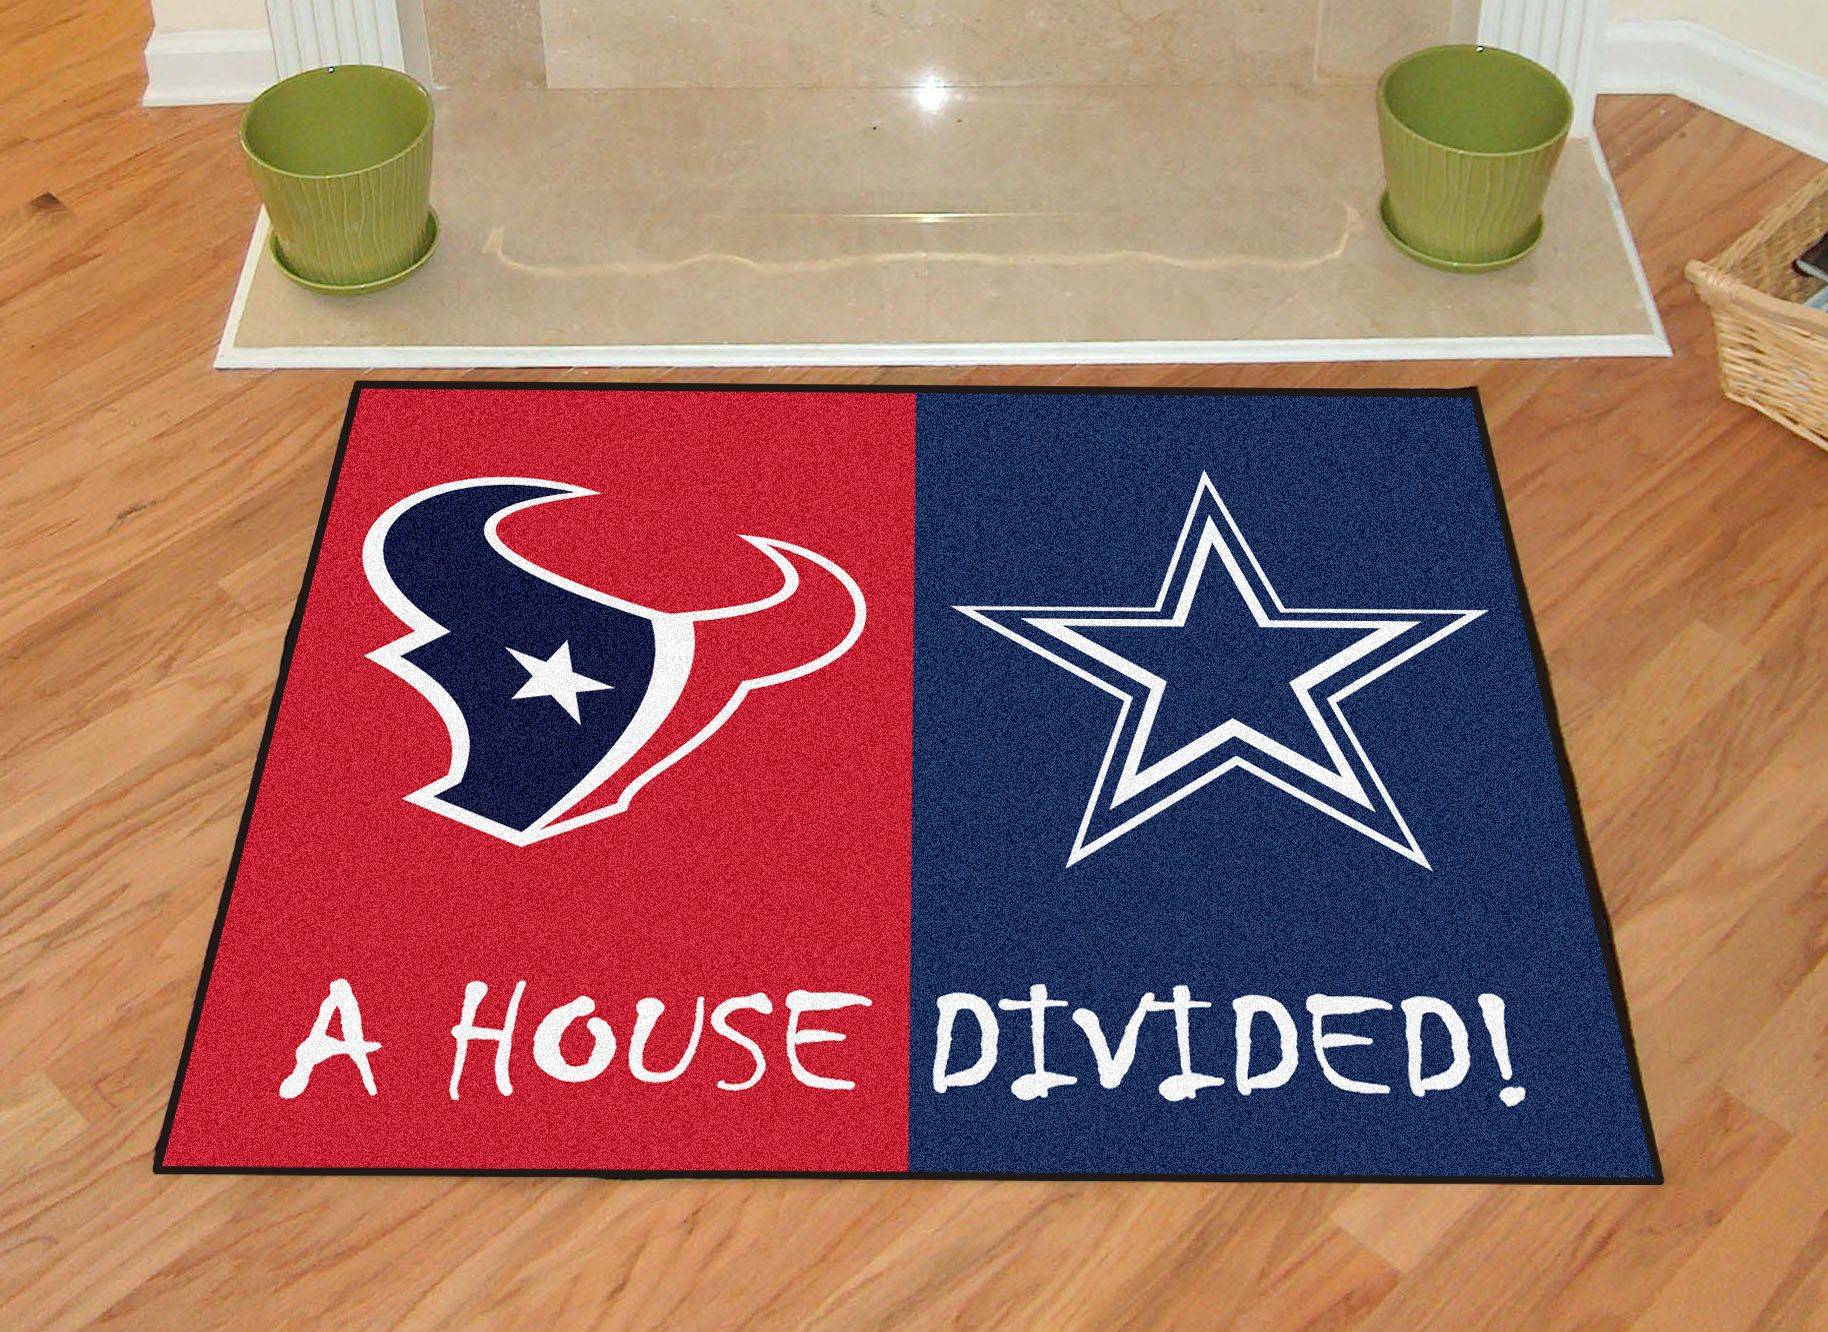 Square Rugs  Dallas Cowboys Sign Large Wood Helmet backorder Cowboys sign Helmets and Products